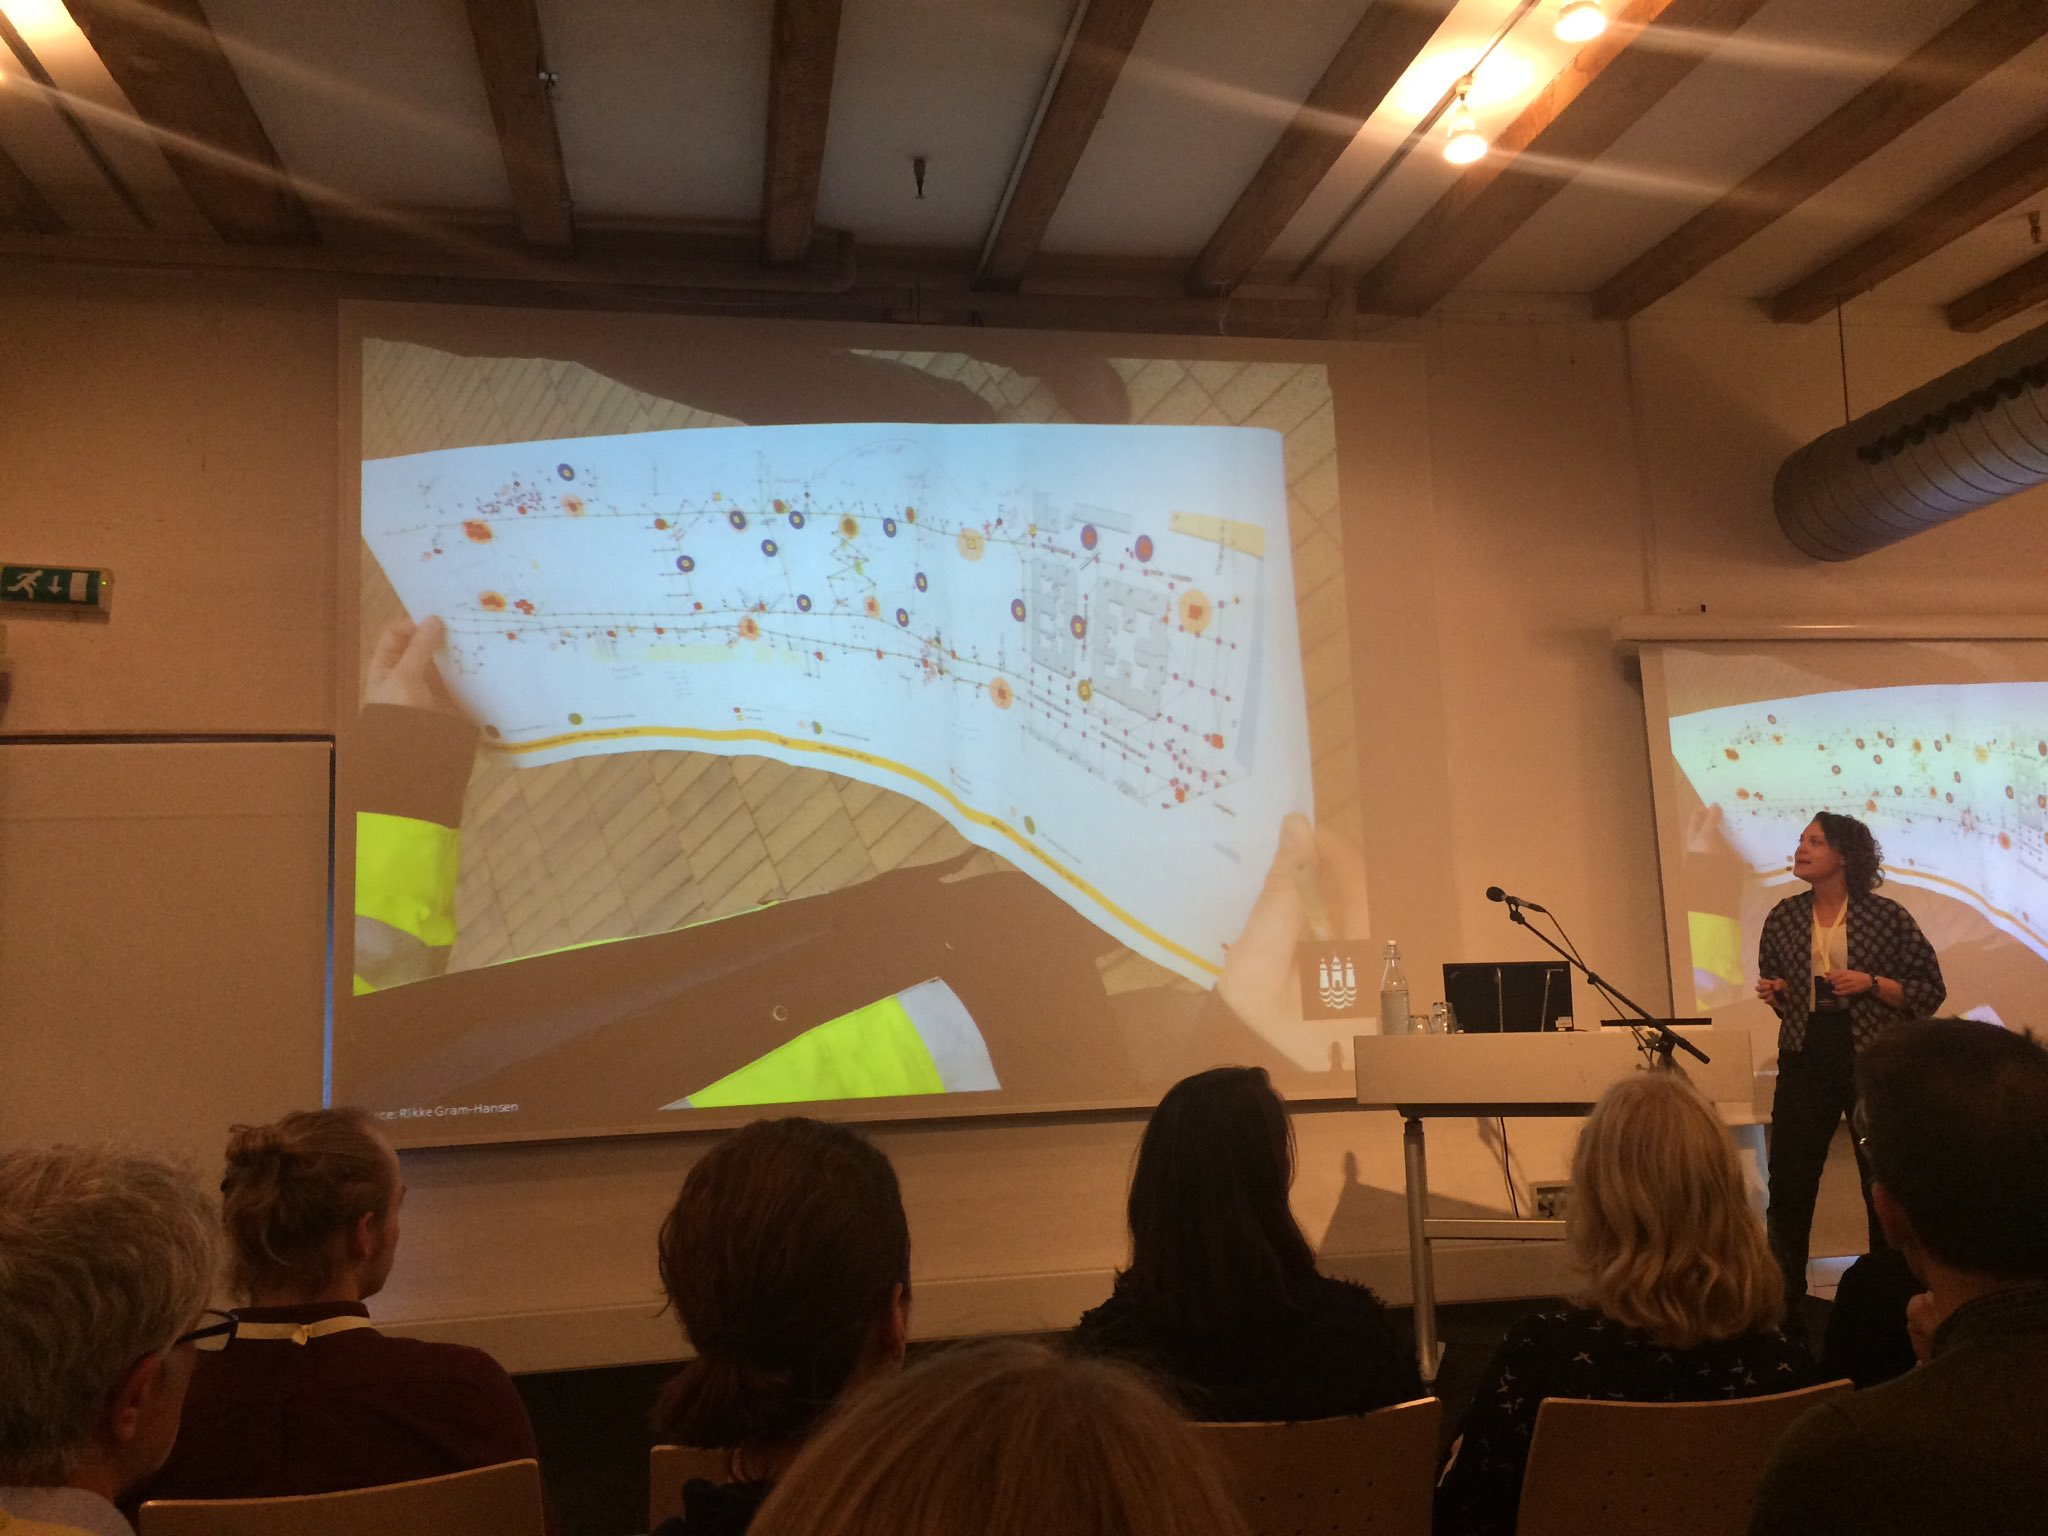 . @RikGra shares experiences from #cphstreetlab at the Designing for Smart Citizens conference @DACdotDK @designcentret @AlexandraInst https://t.co/nyBfRUt0GR